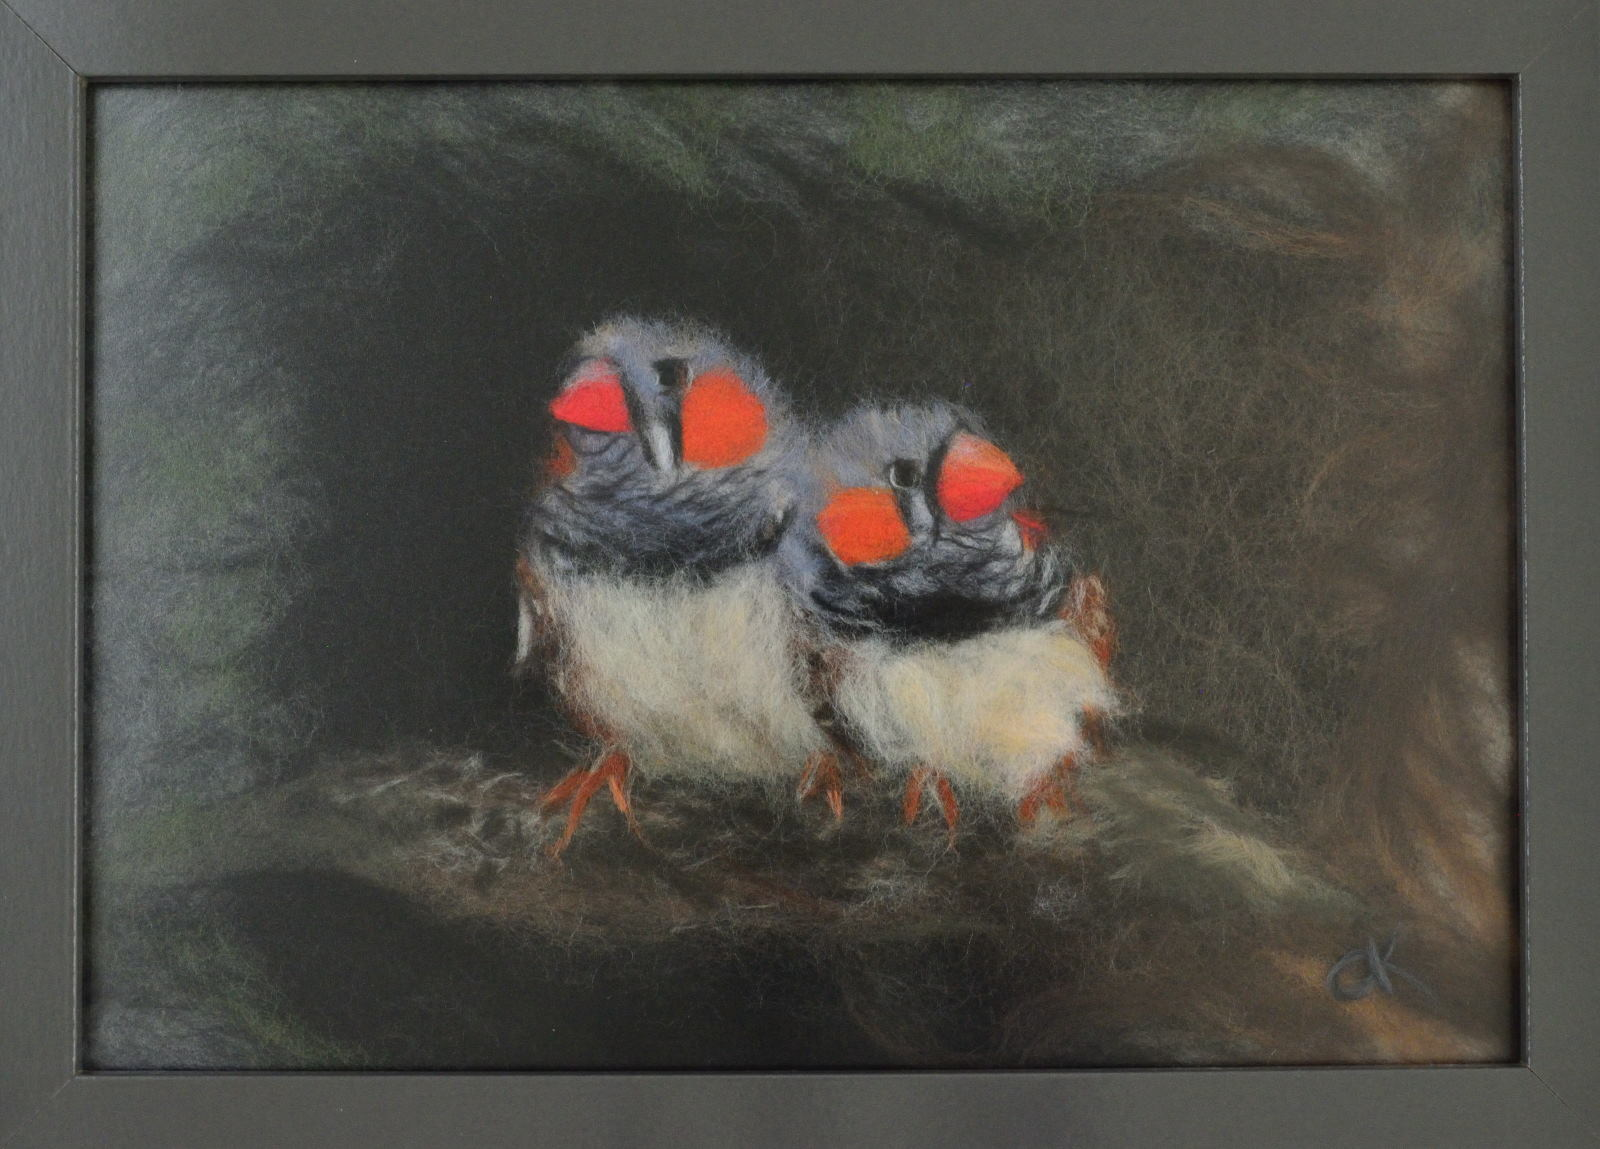 Two Parrots. Wool Art Gallery. Picture made of fine merino wool